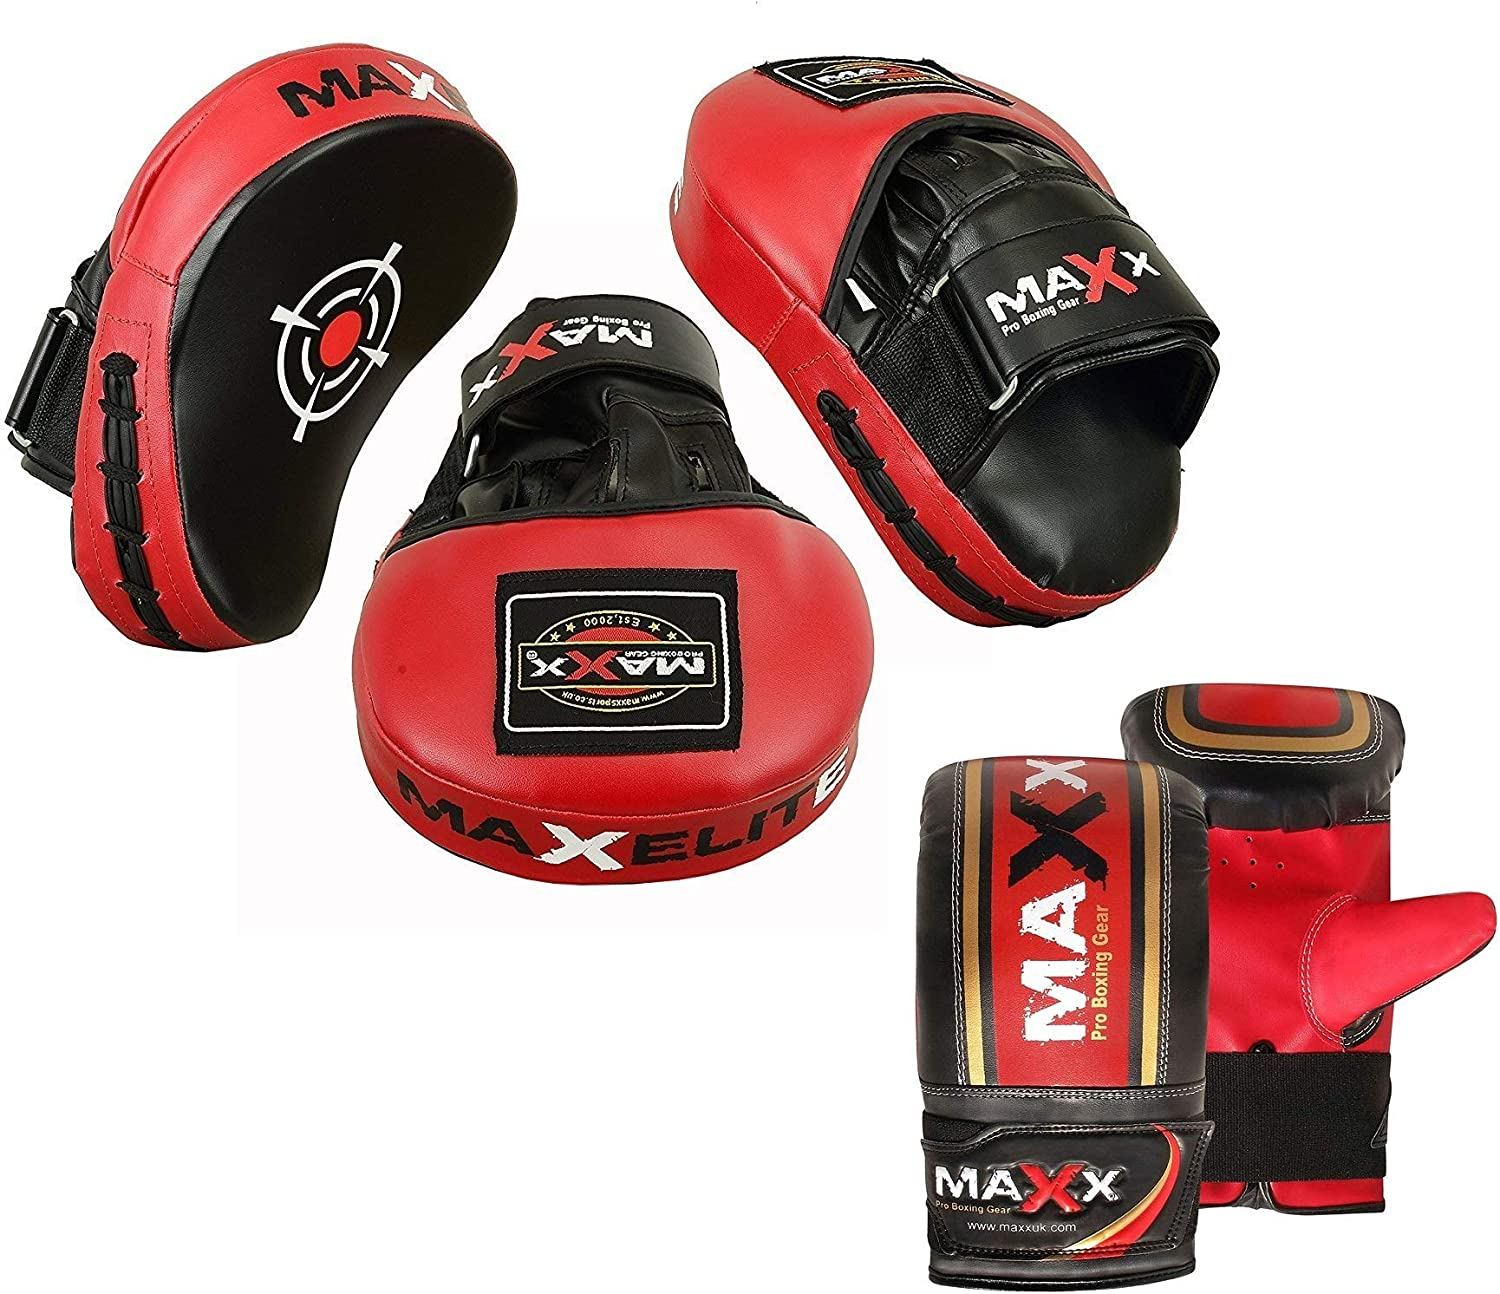 Blue//w Pads /& gloves Hook and Jab Strike Mitts Max Aero Gel Padded curved Smartie Focus Pads